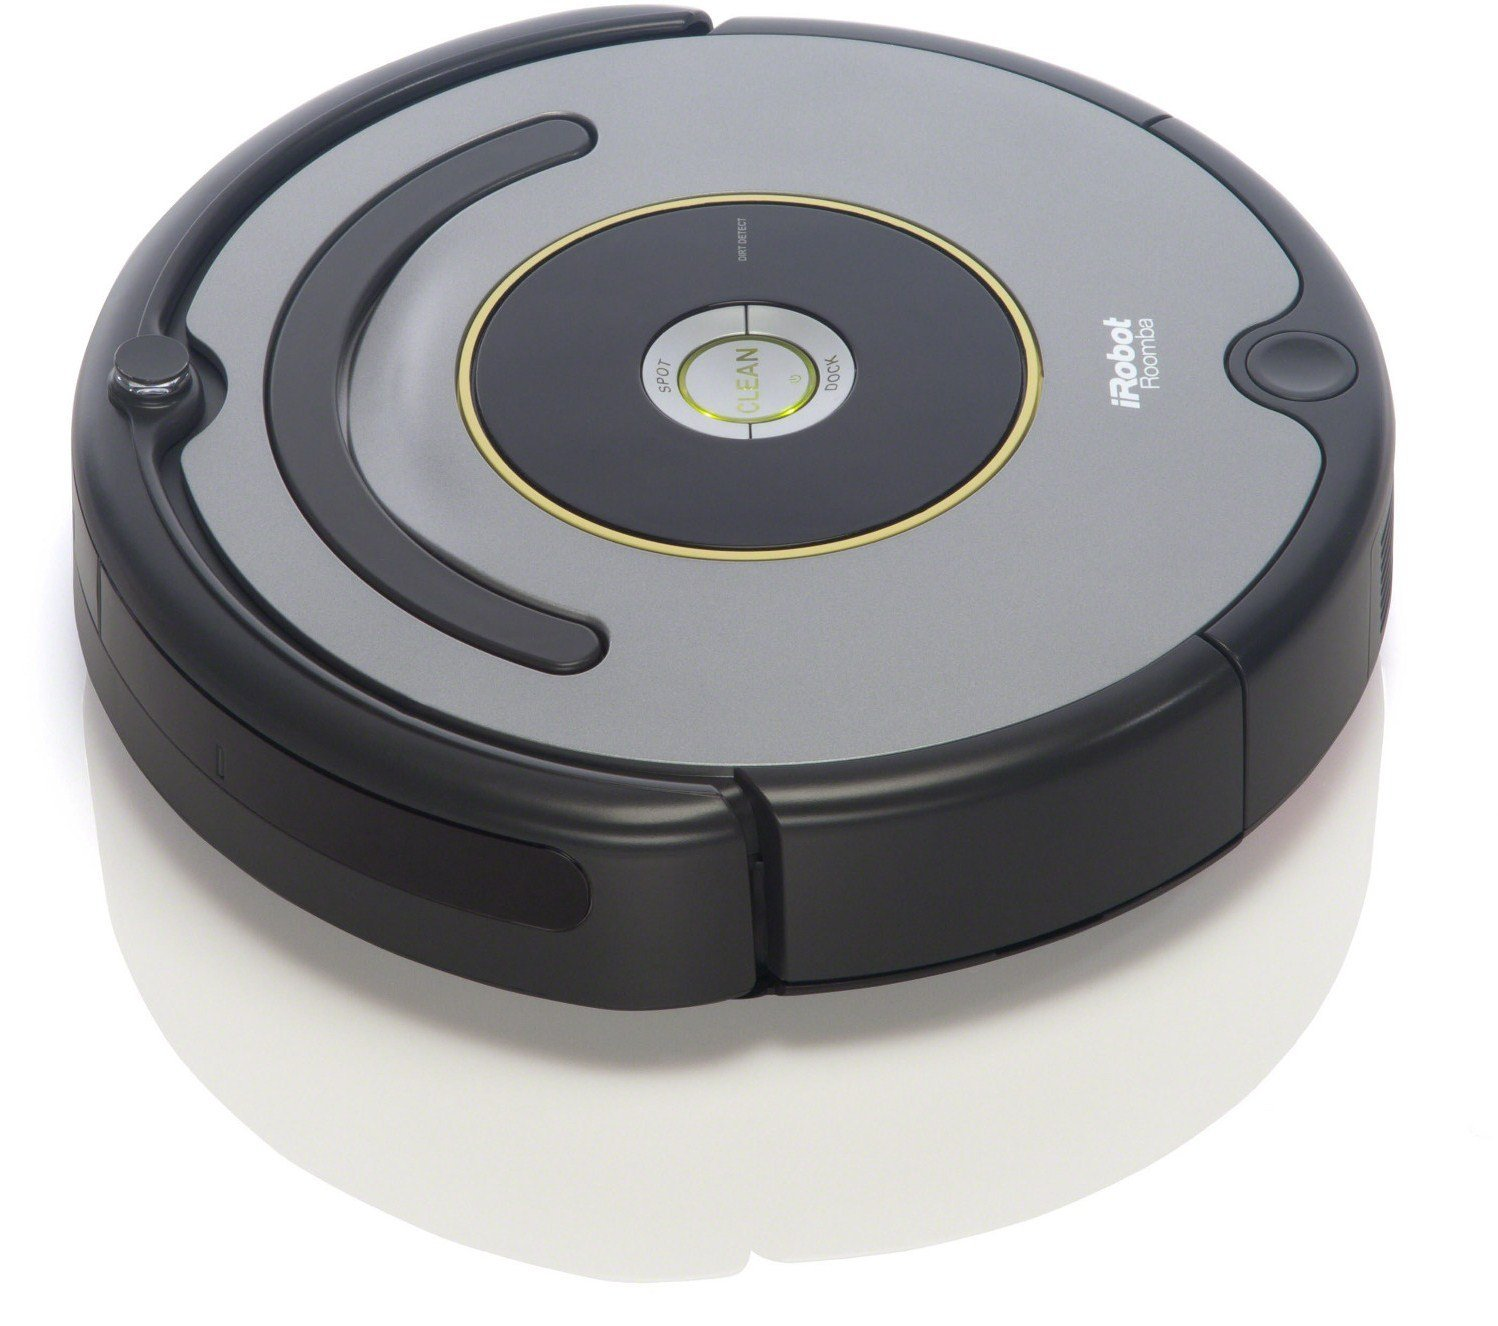 testbericht irobot roomba 630 631 roboter test portal. Black Bedroom Furniture Sets. Home Design Ideas